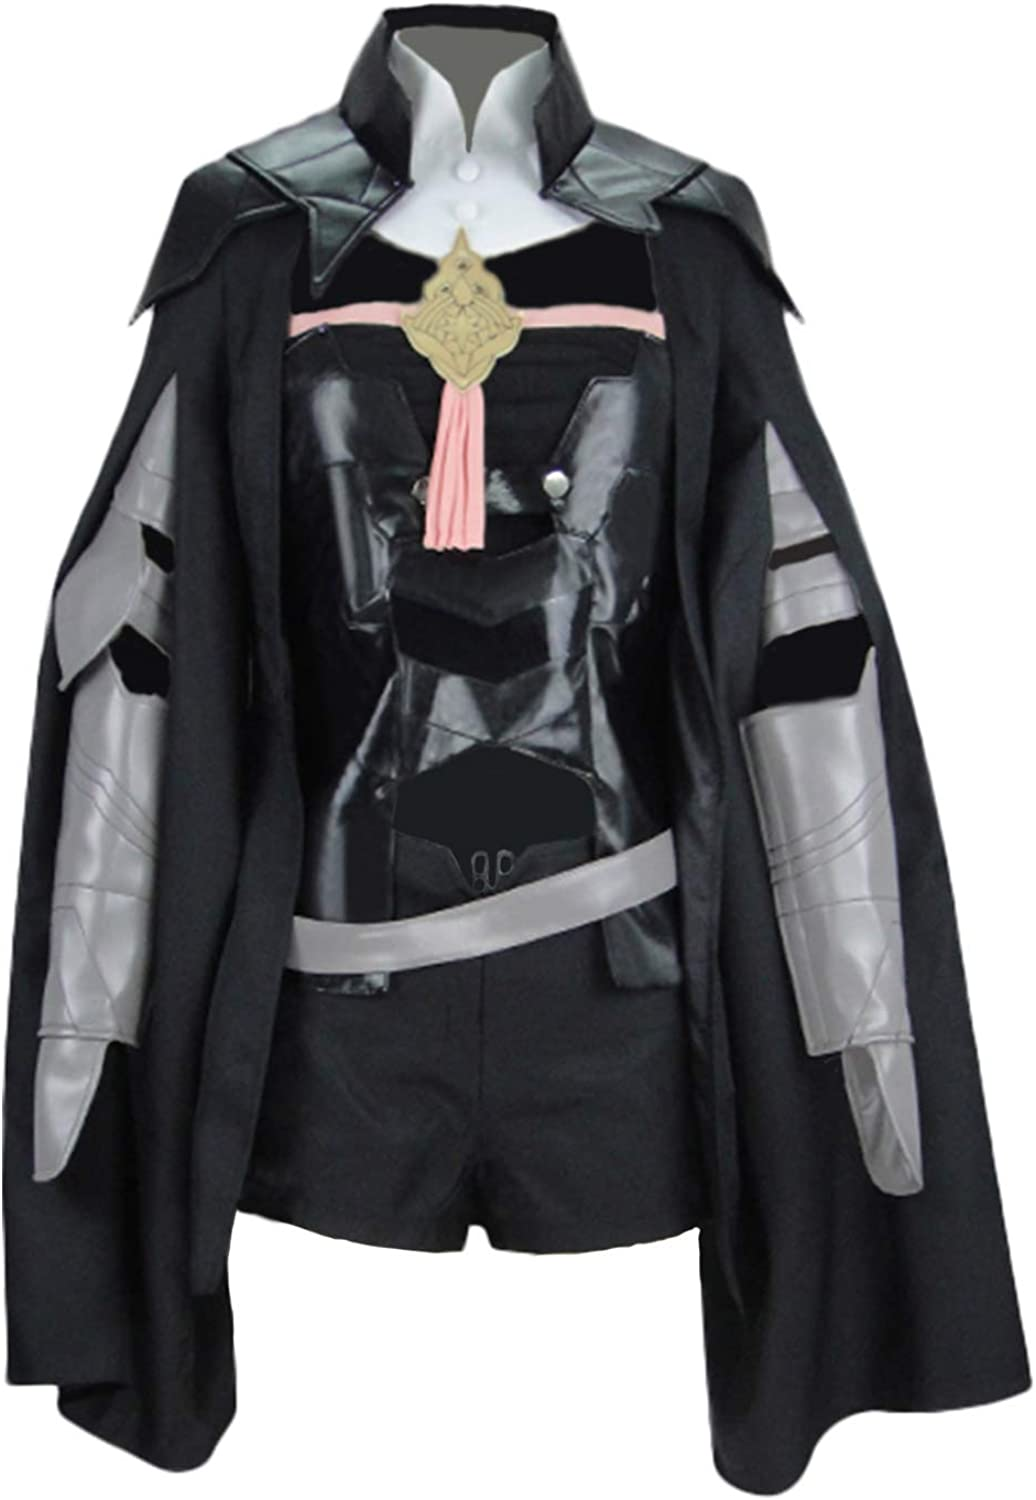 Fire Emblem Cosplay Three Houses Byleth Cosplay Costume And shoe covers